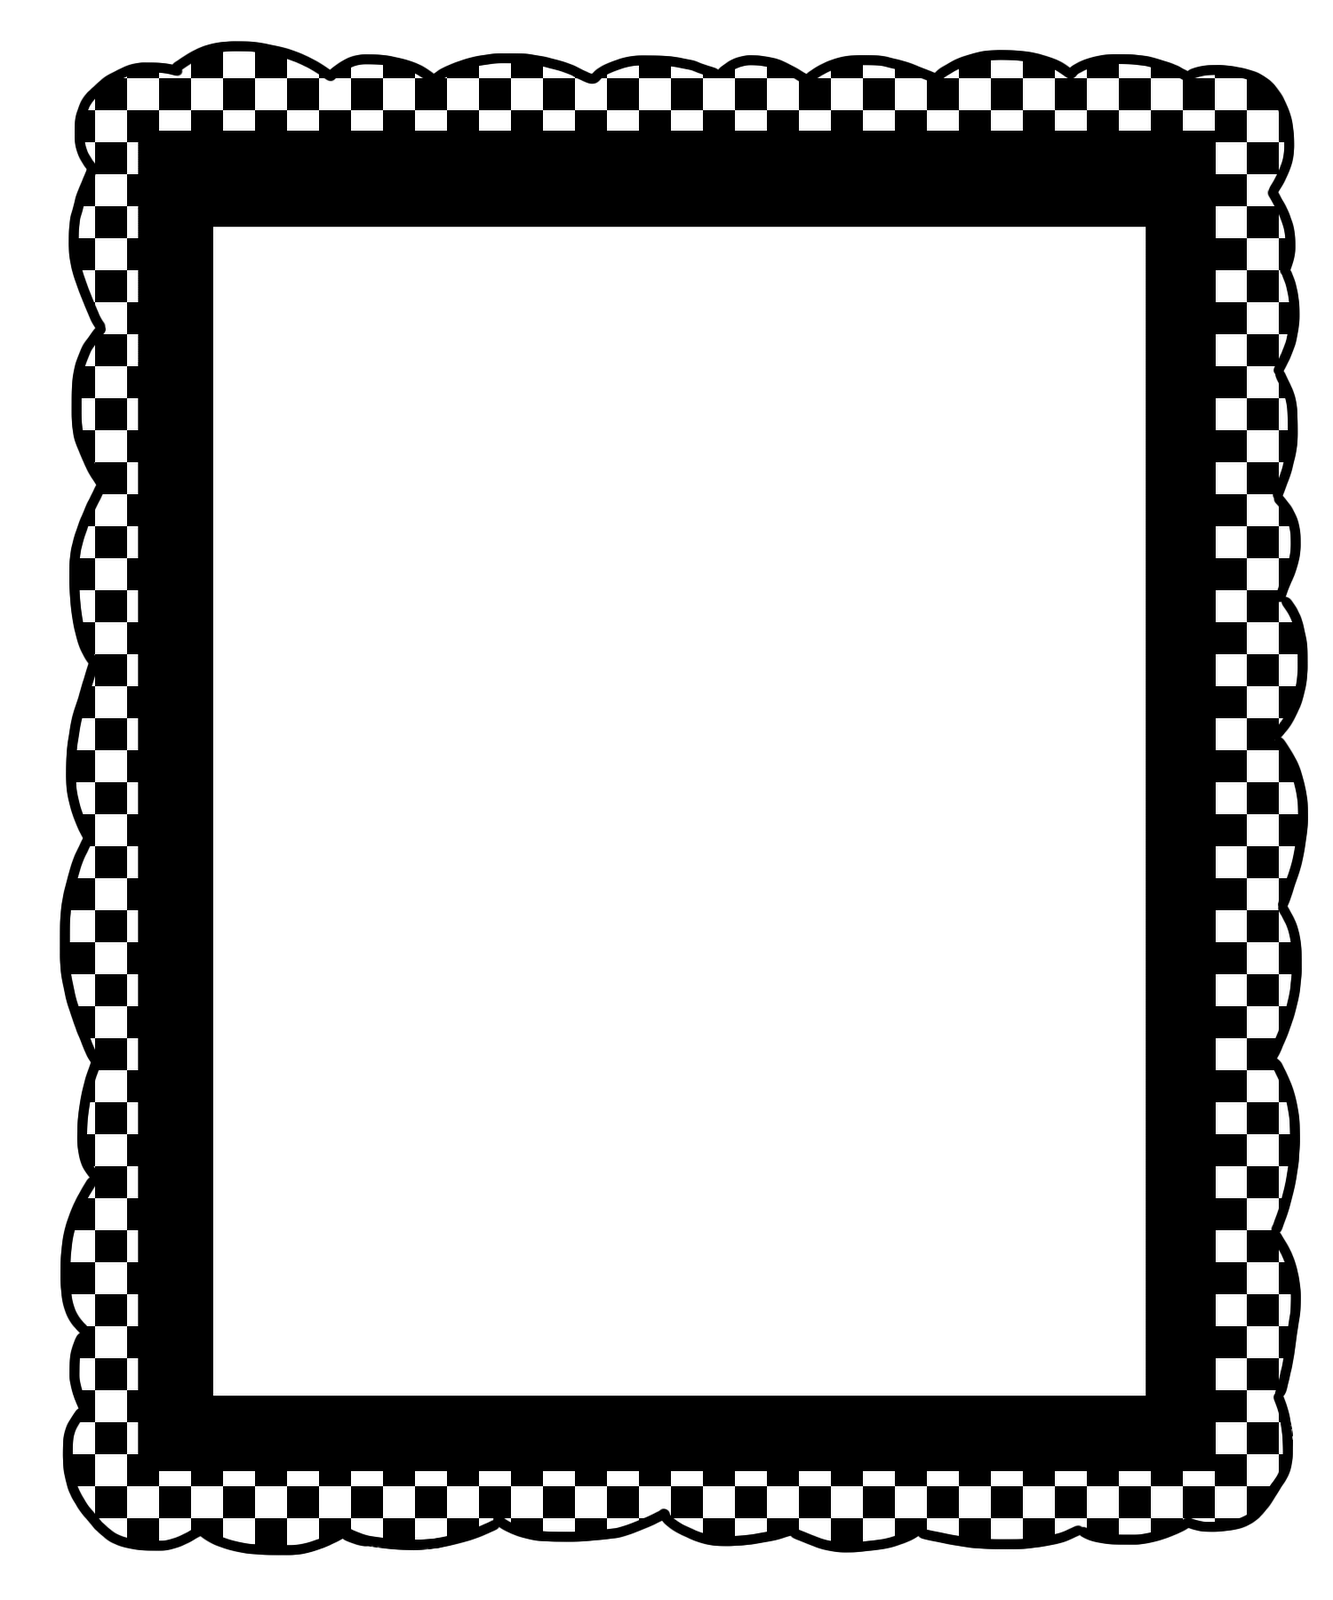 Black And White Checkered Borders